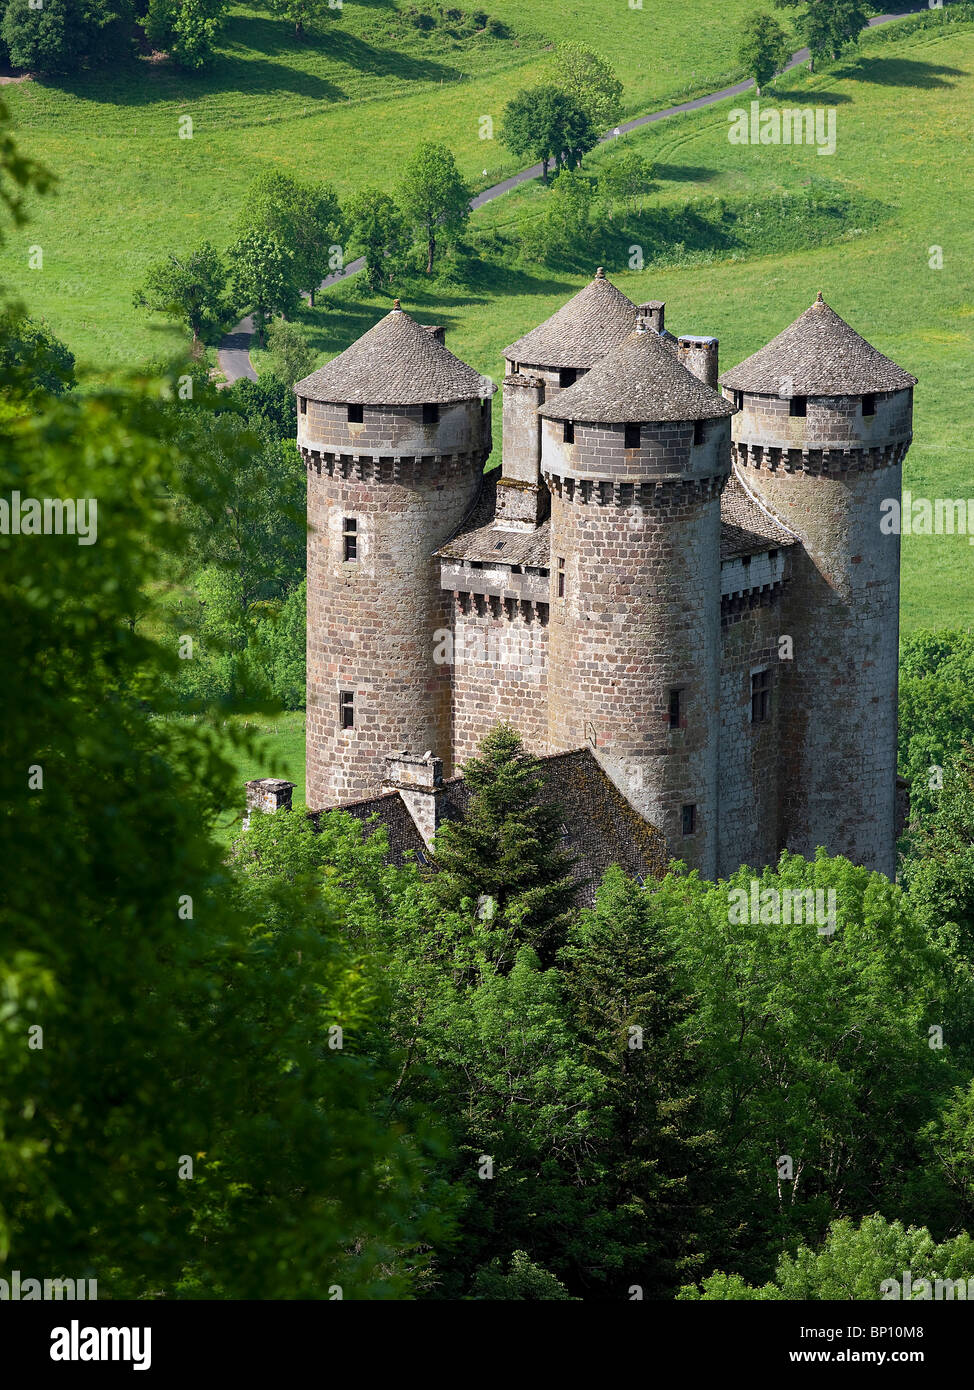 France  Auvergne  Cantal  Tournemire  Anjony Castle Stock Photo  Royalty Free Image  30755320